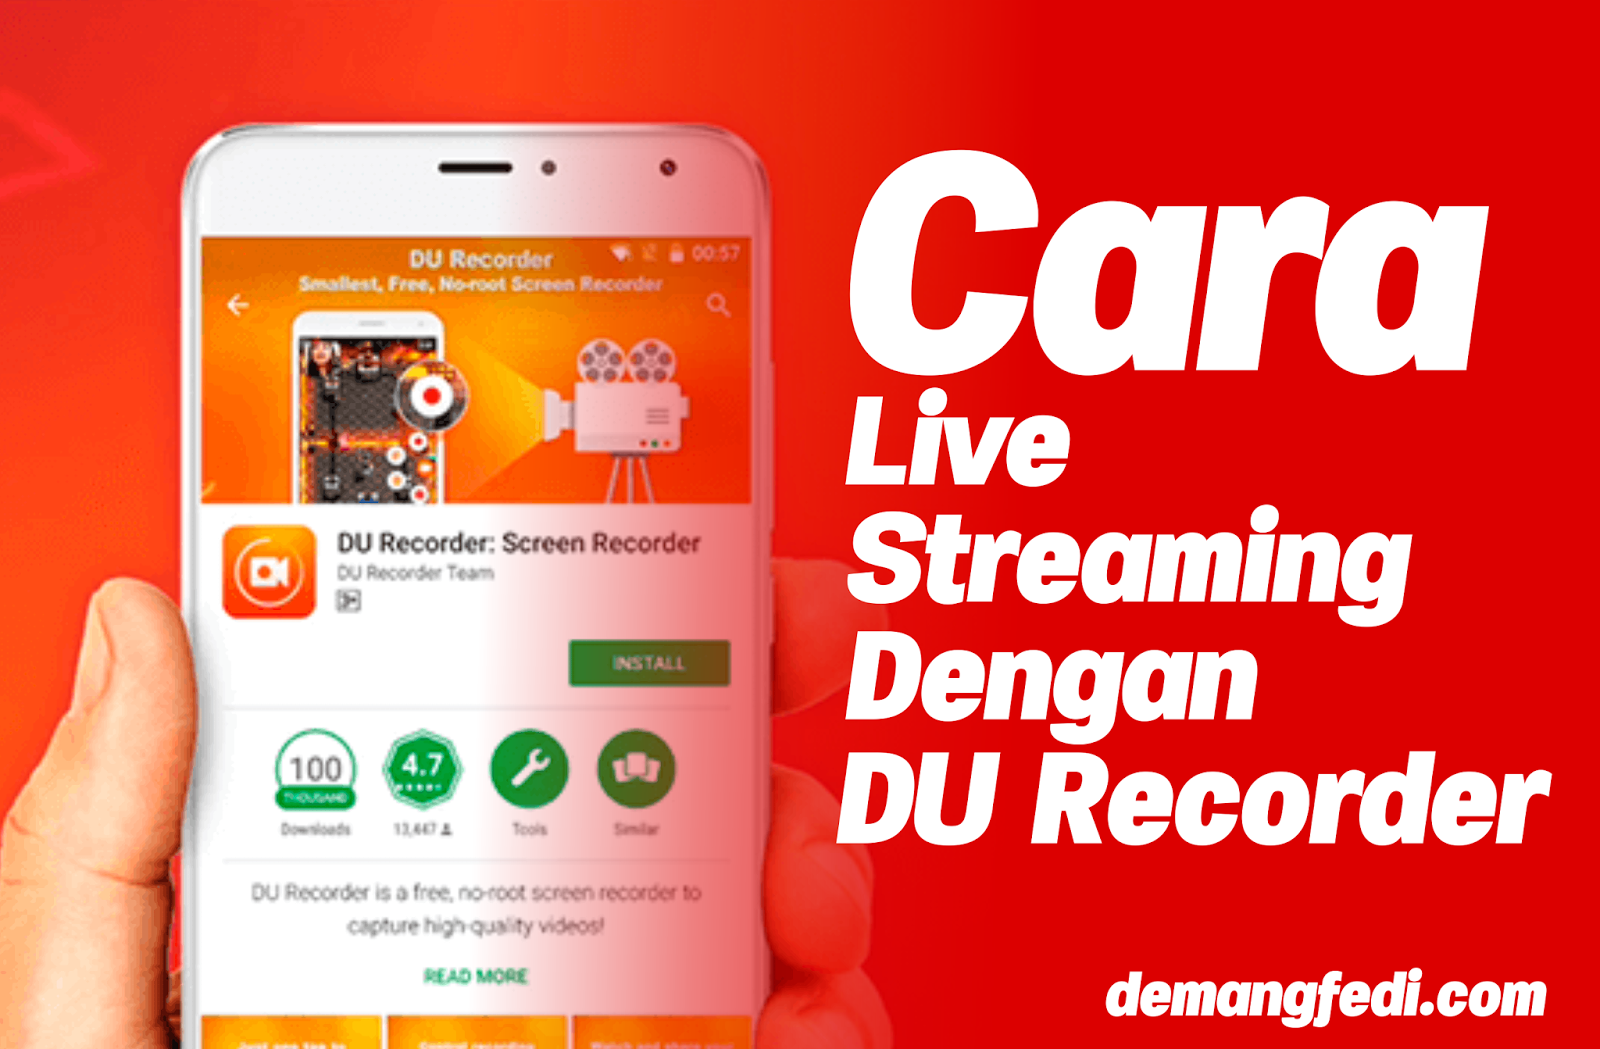 Cara Live Streaming Facebook Dengan DU Recorder